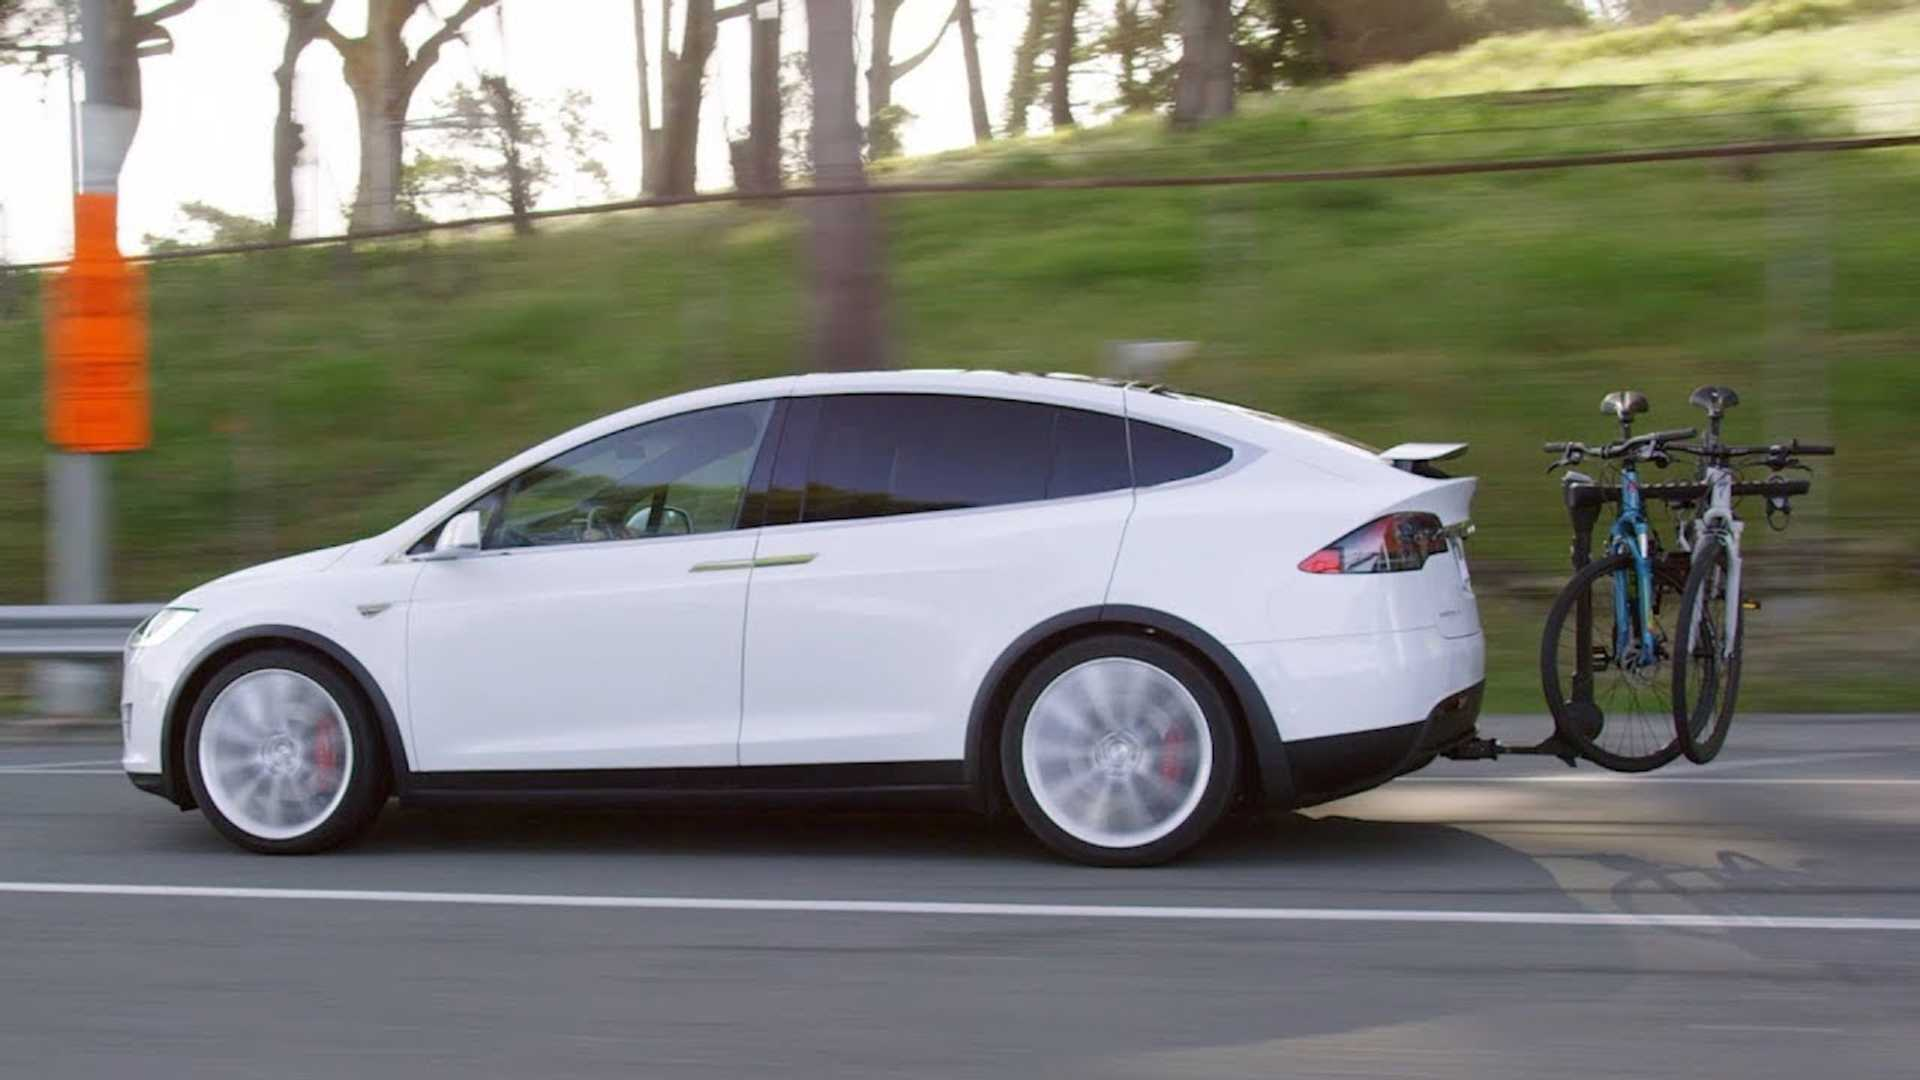 Extraordinary Tesla Model X Family Road Trip: Part 1